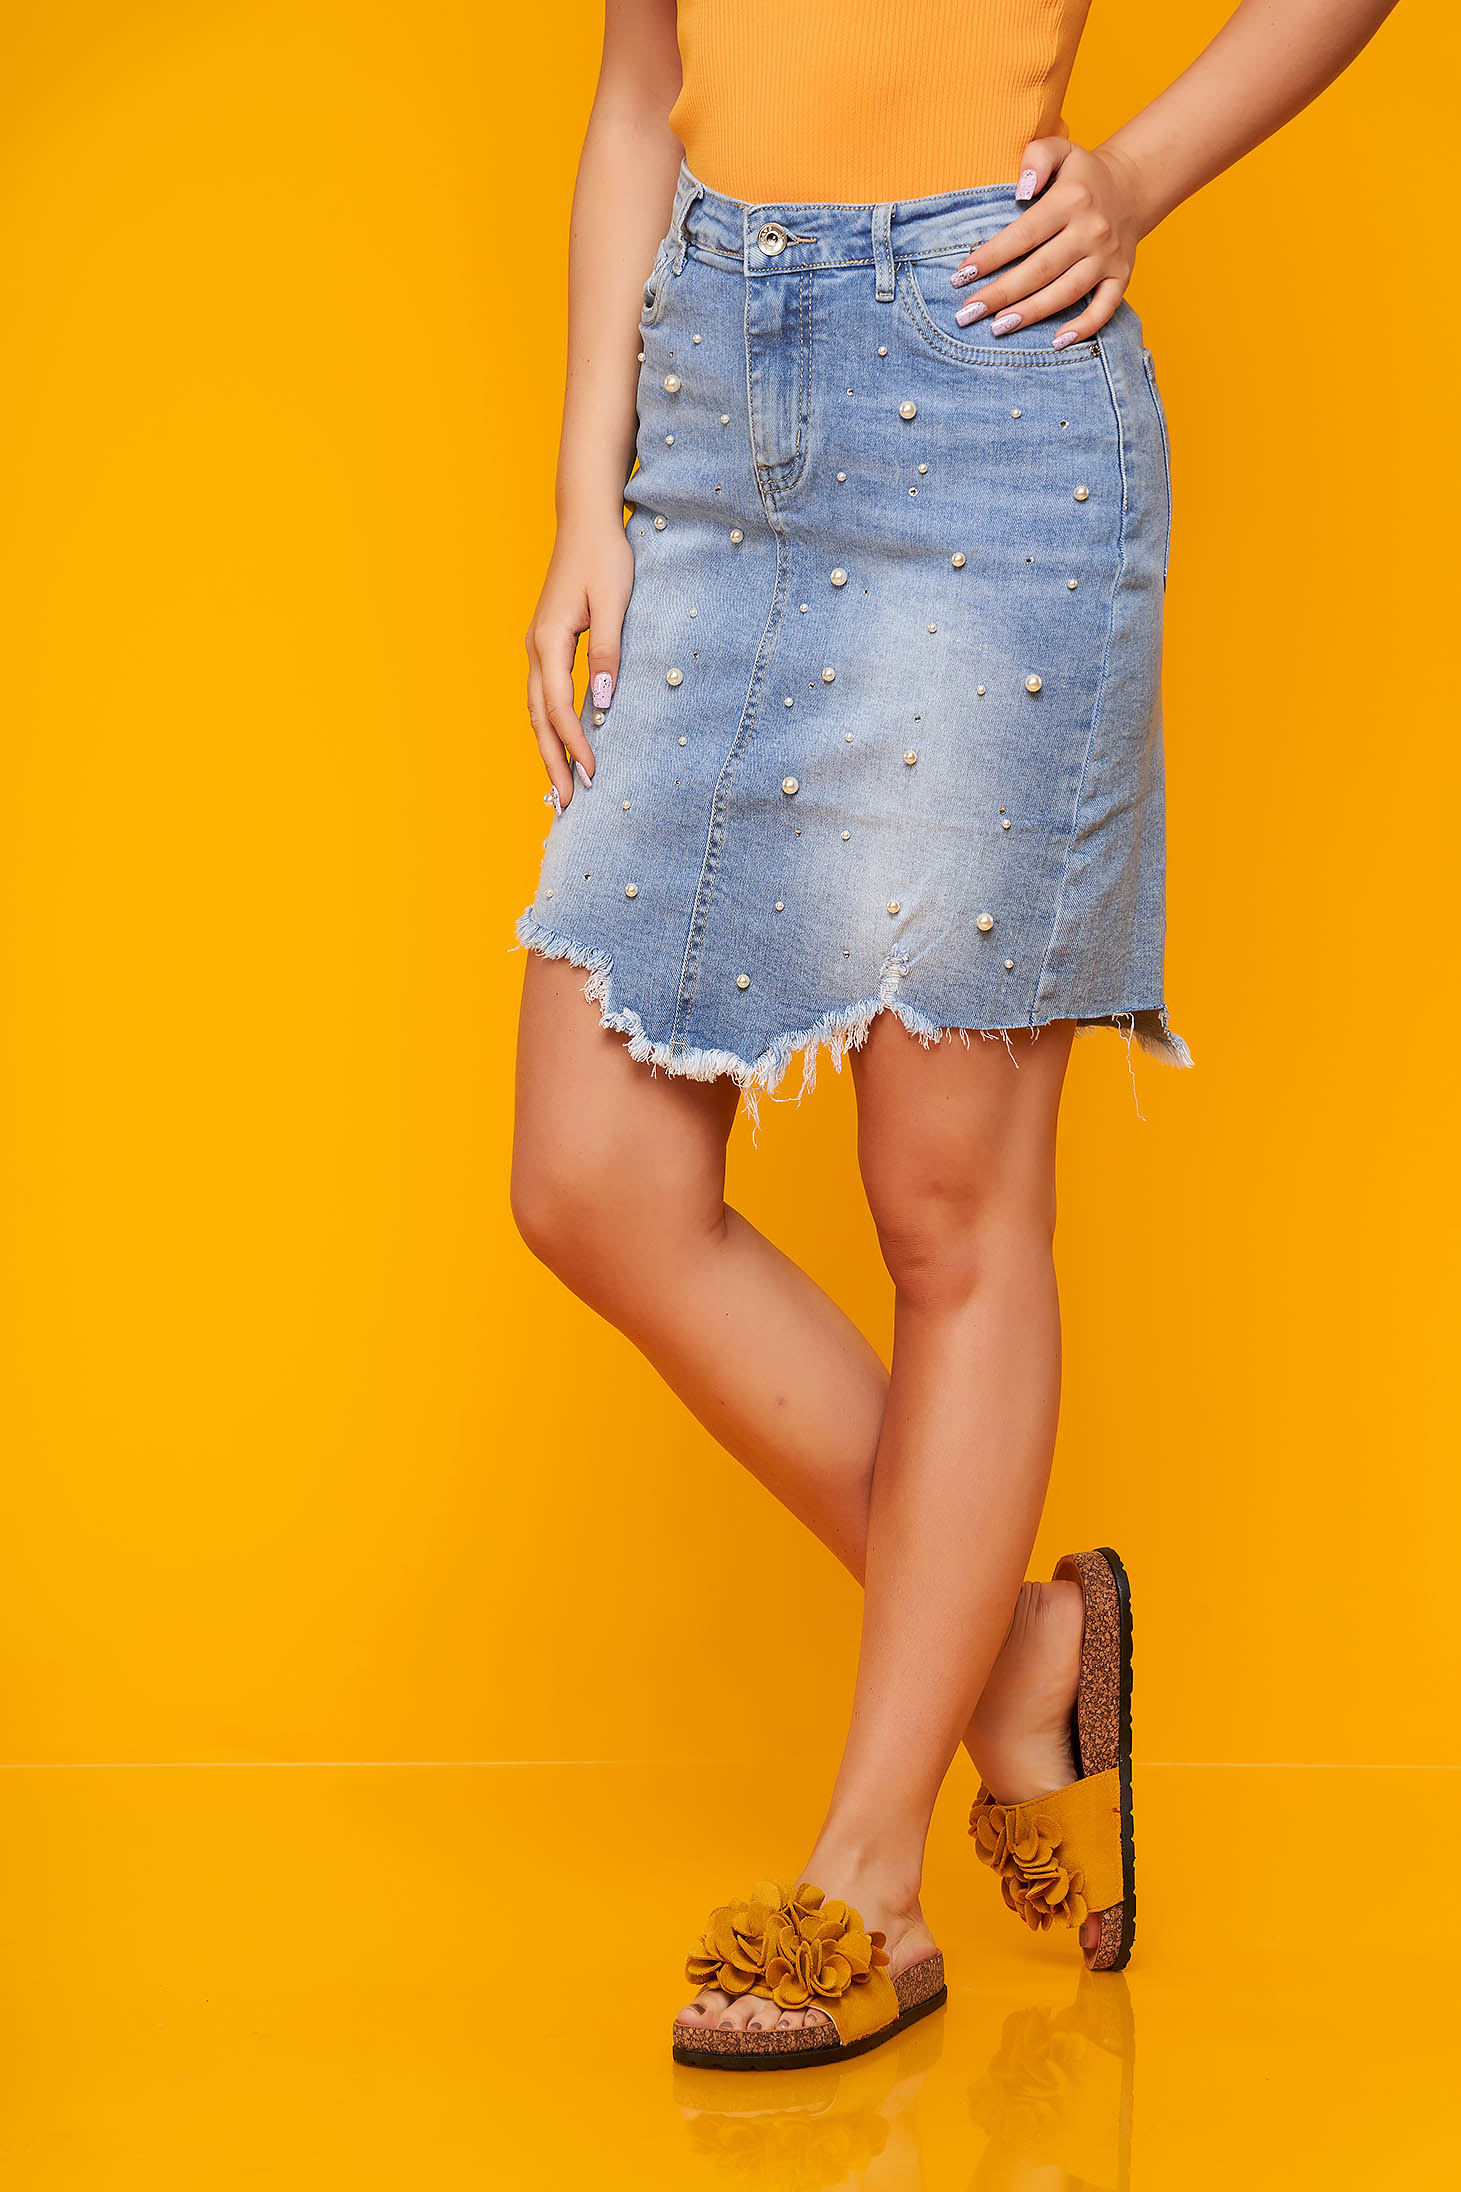 Blue skirt casual short cut denim with small beads embellished details